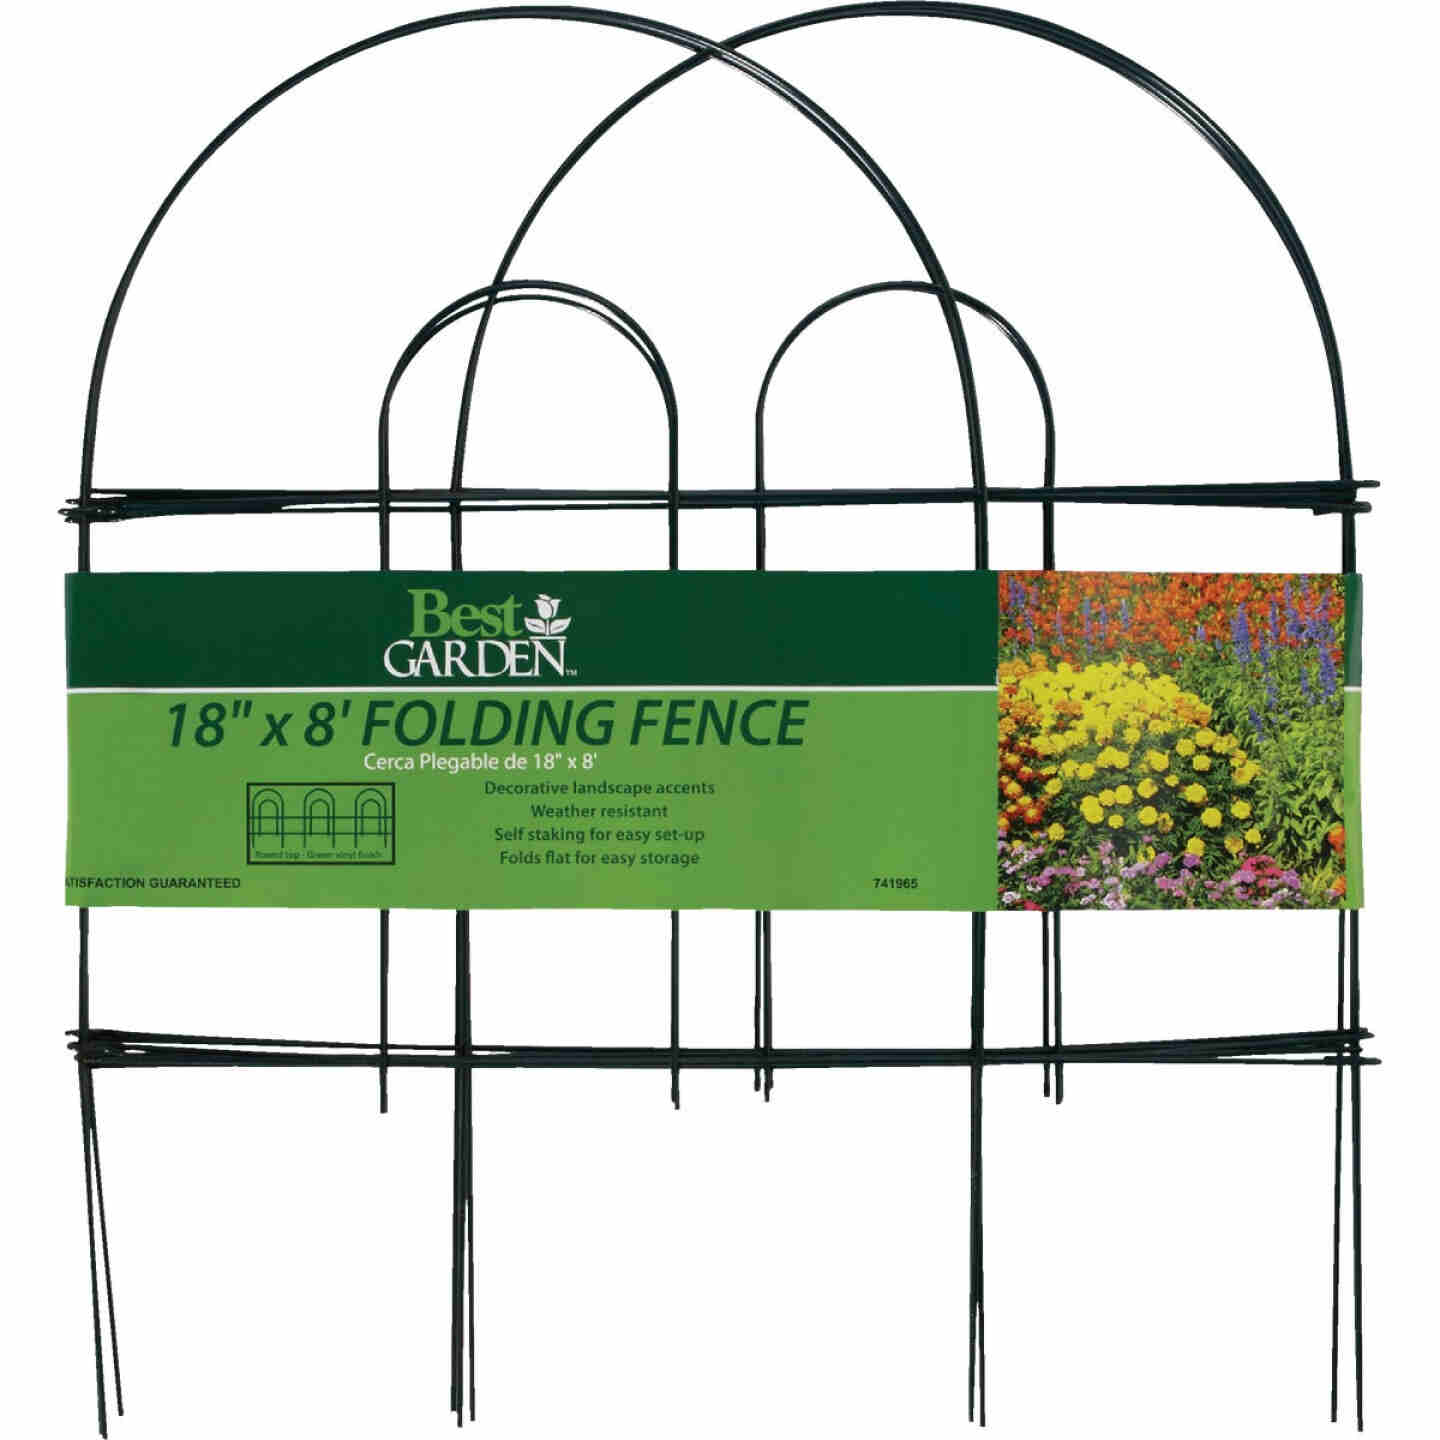 Best Garden 8 Ft. Powder-Coated Green Wire Folding Fence Image 3